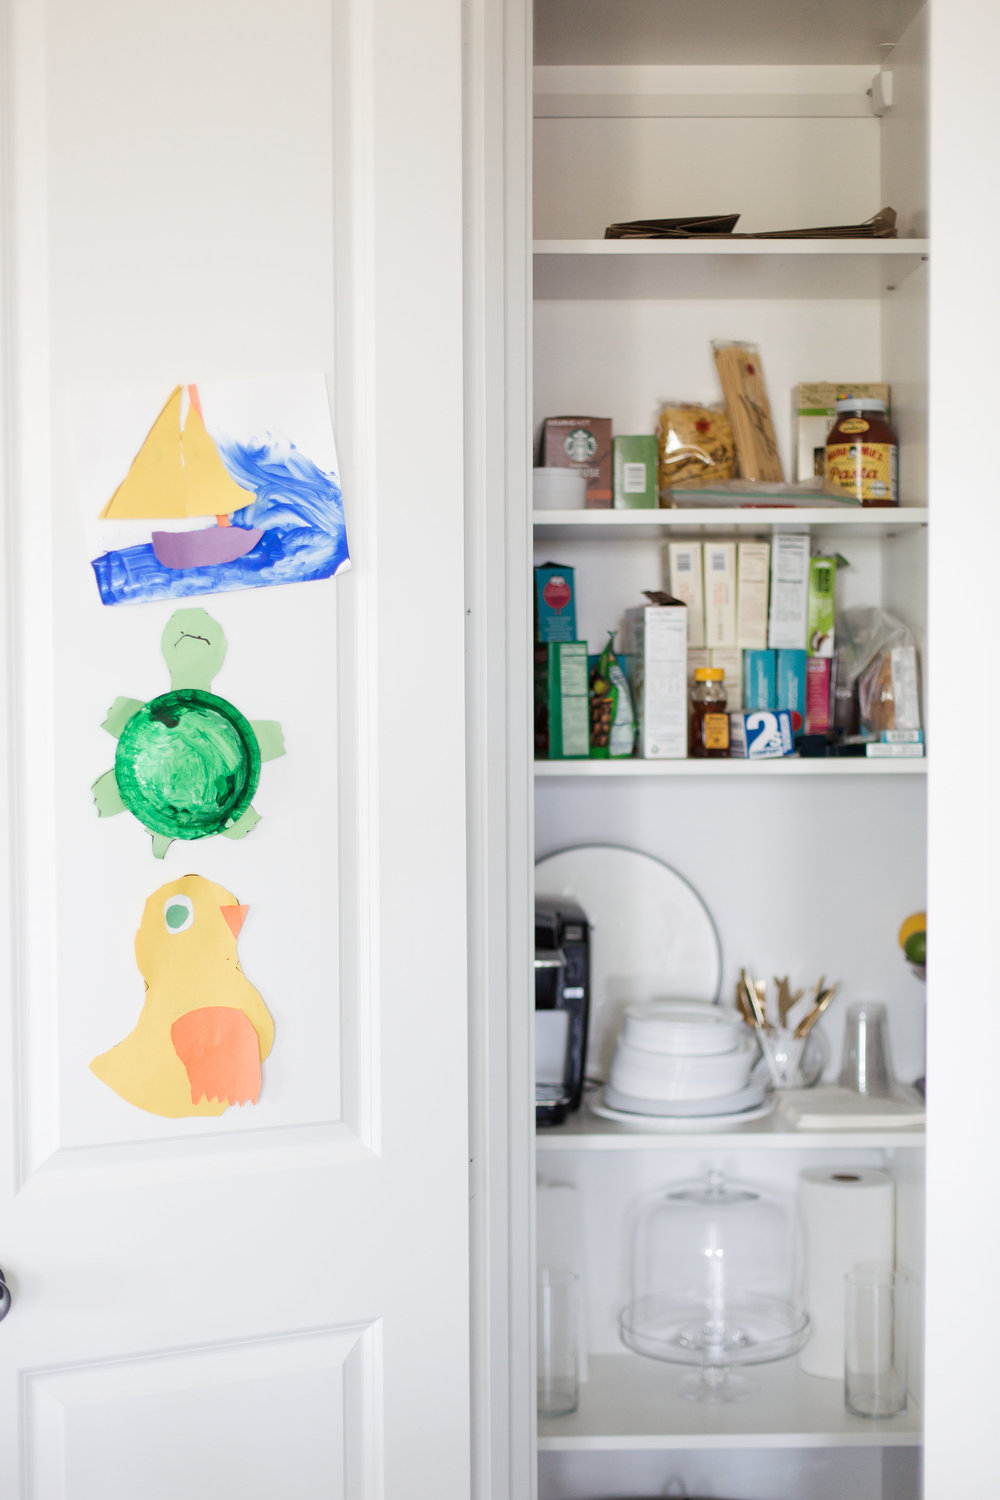 Her son Beck's artwork is a happy welcome into the pantry, which also stores her Keurig, microwave, and toaster.